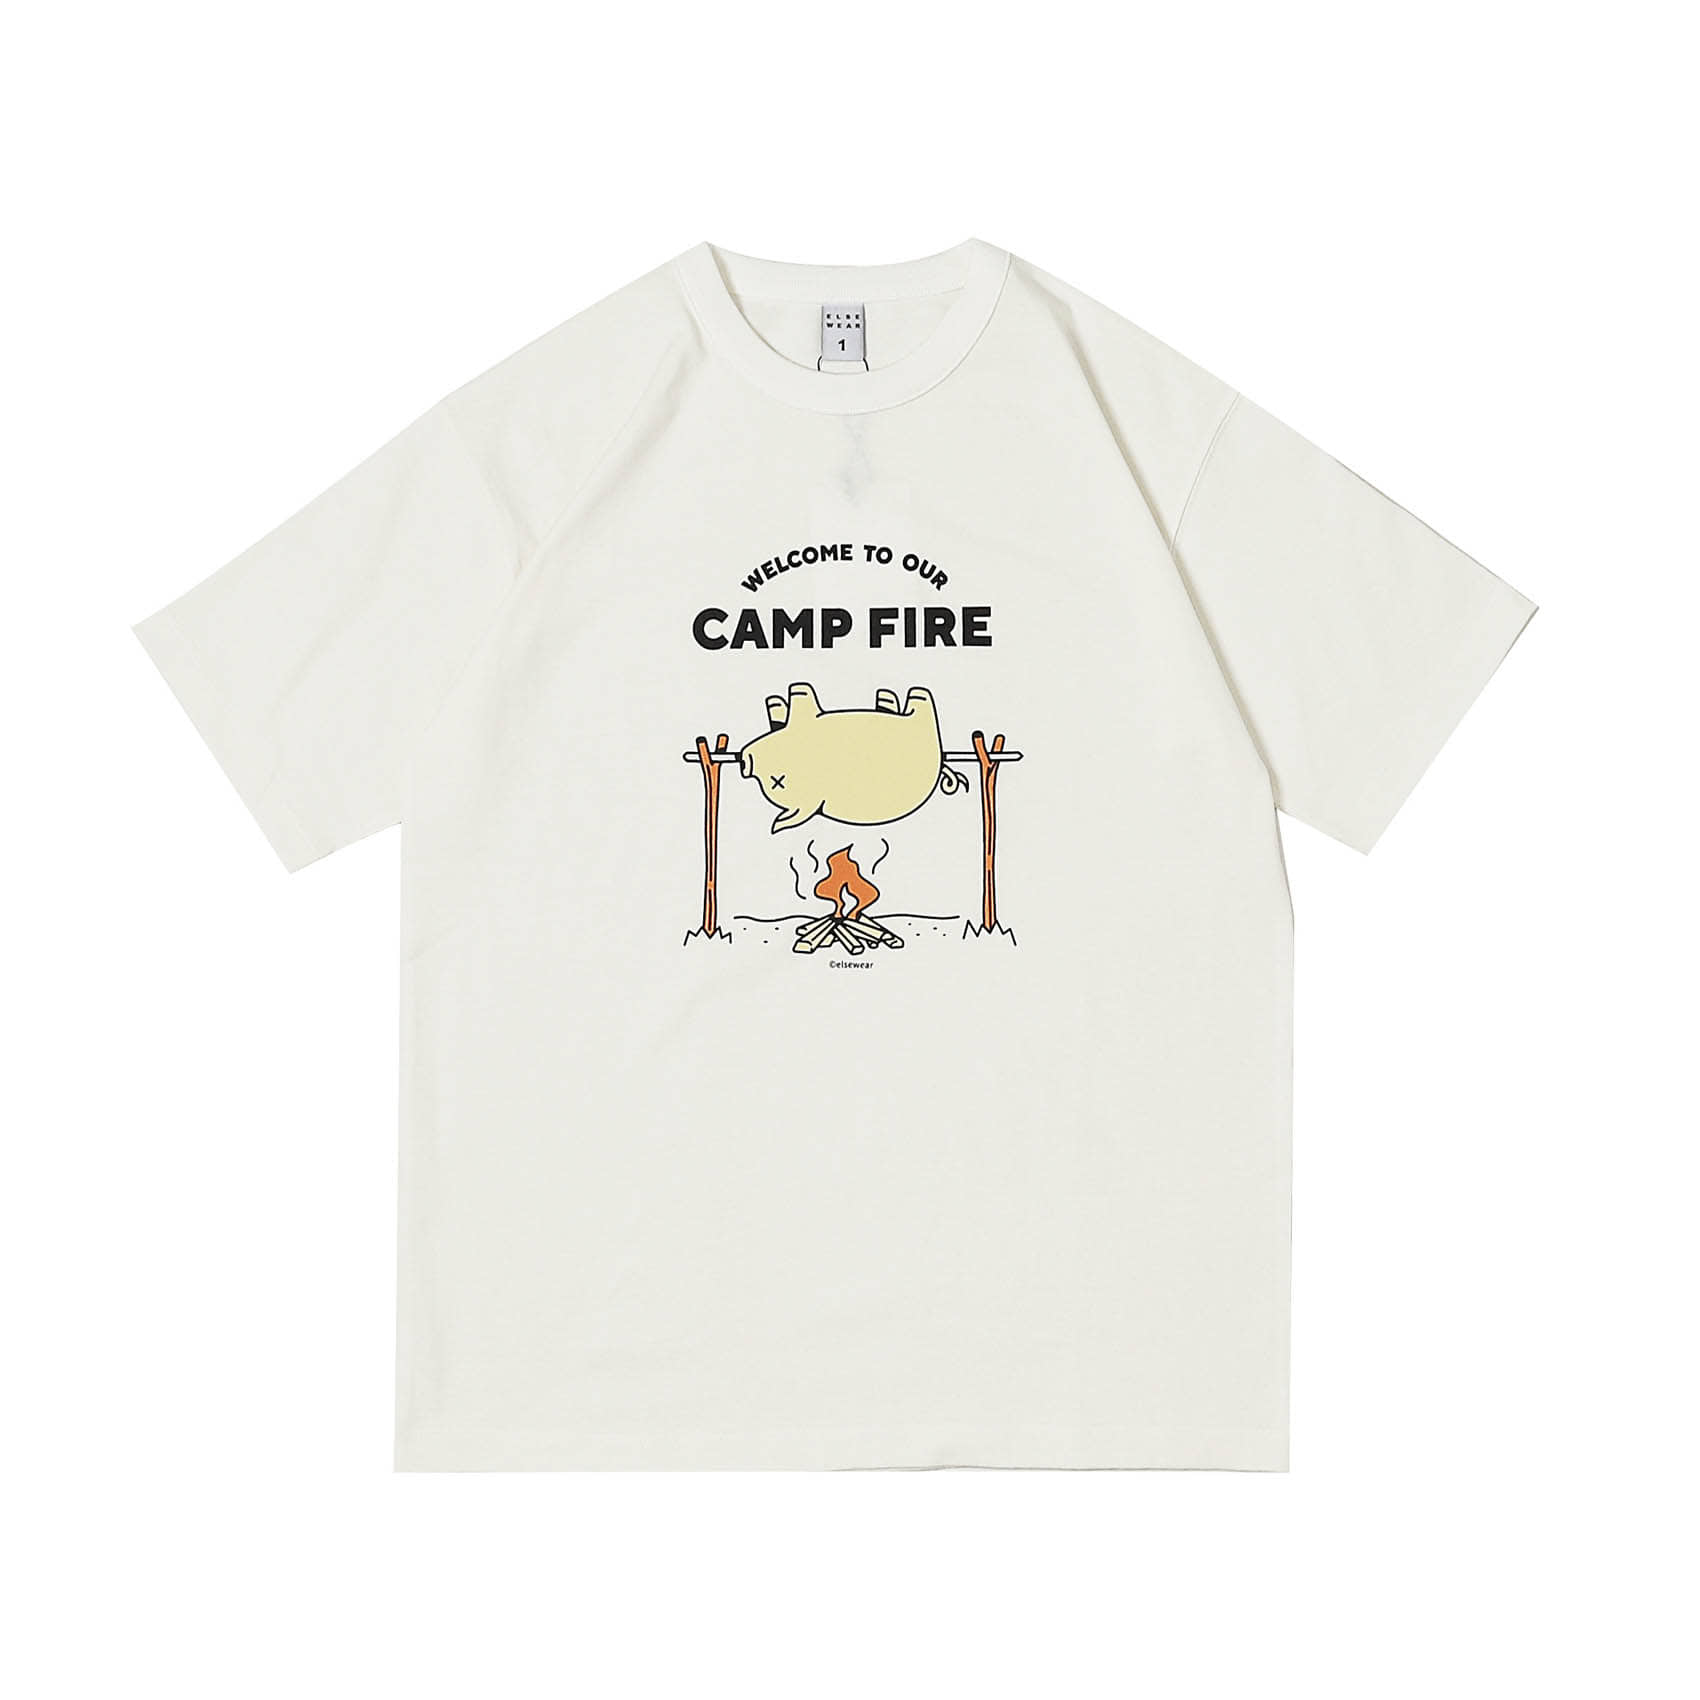 S/S PRINTED TEE - CAMP FIRE